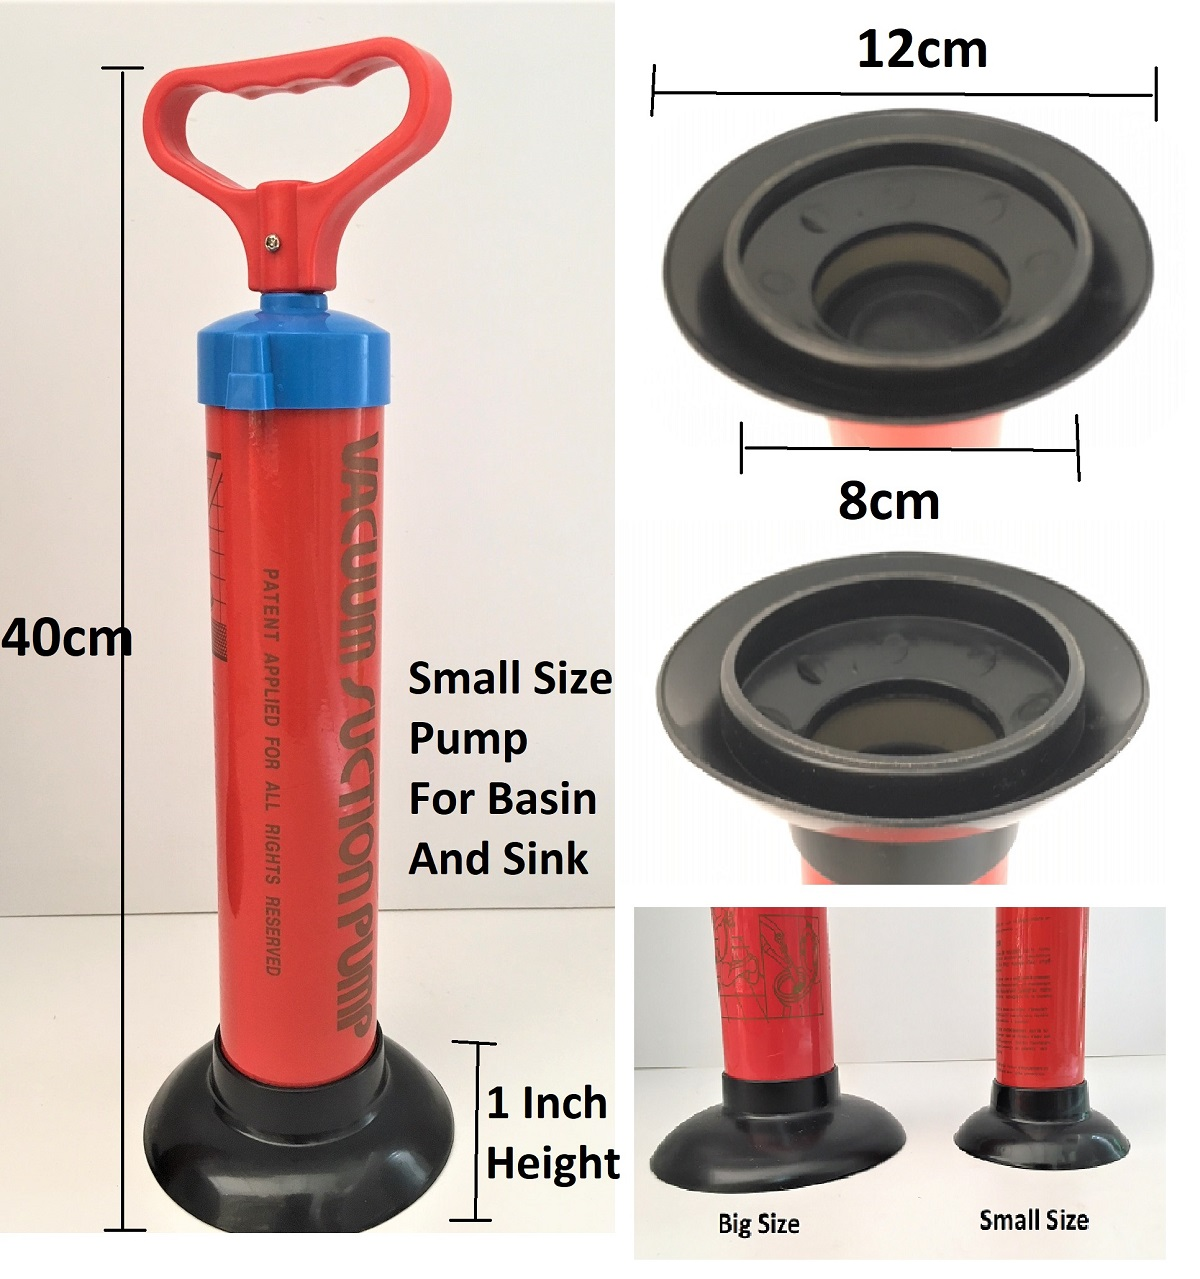 Taiwan Toilet Suction Pump For Clog drainage In Sink ,Toilet Bowl,Basin And Floor Grating